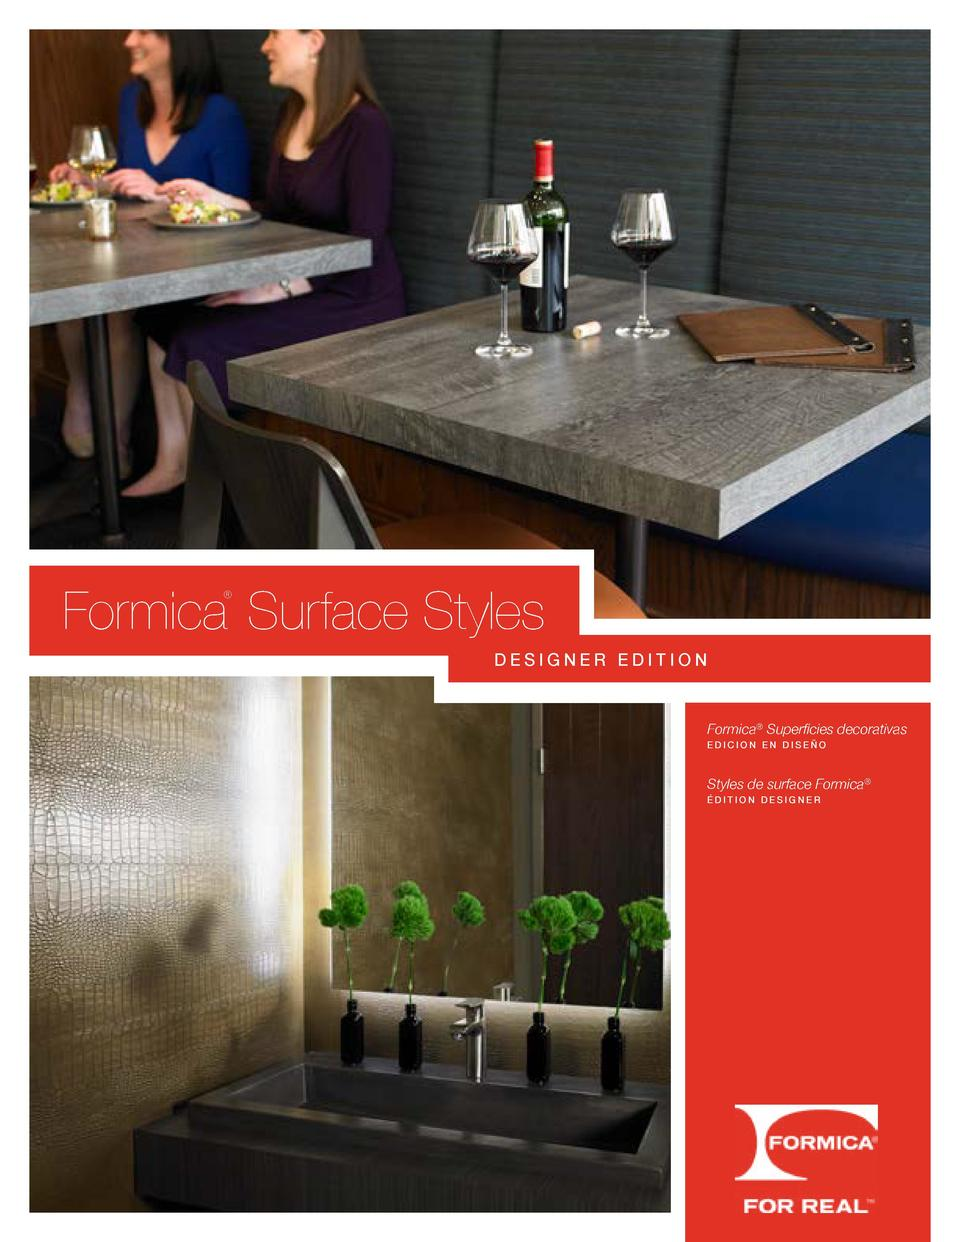 Formica Surface Styles     DESIGNER EDITION  Formica   Superficies decorativas  EDICION EN DISE  O  Styles de surface Form...